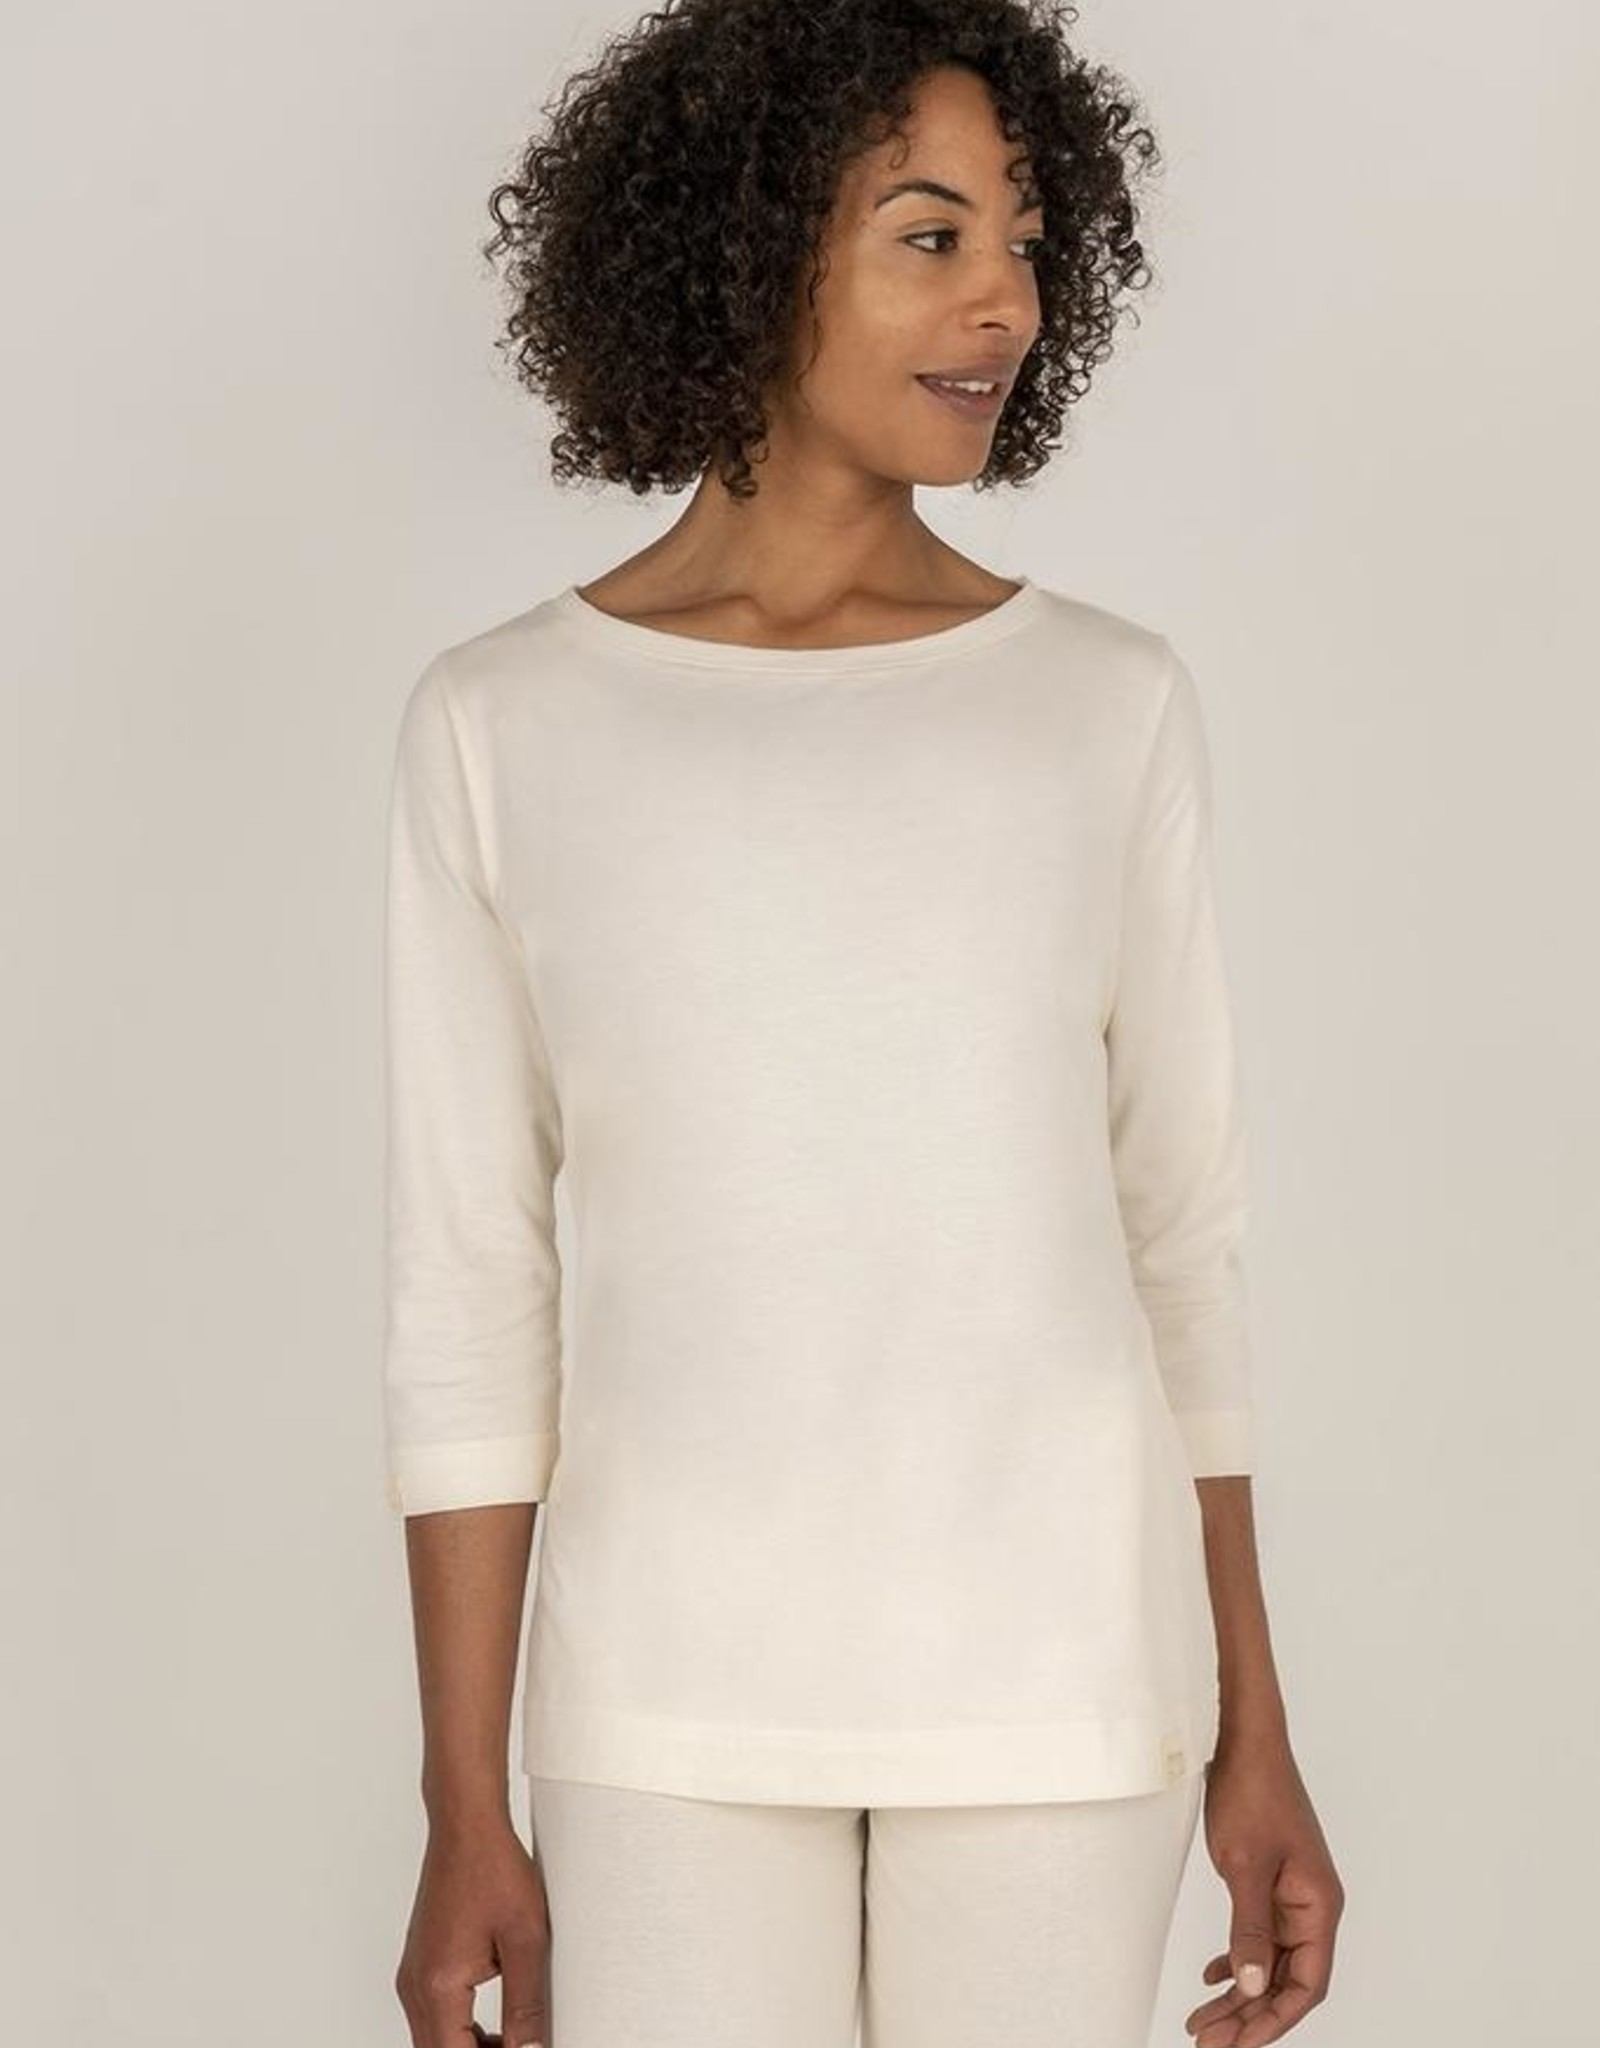 Capri sleeve shirt for women with boat neck from Organic Cotton Colours